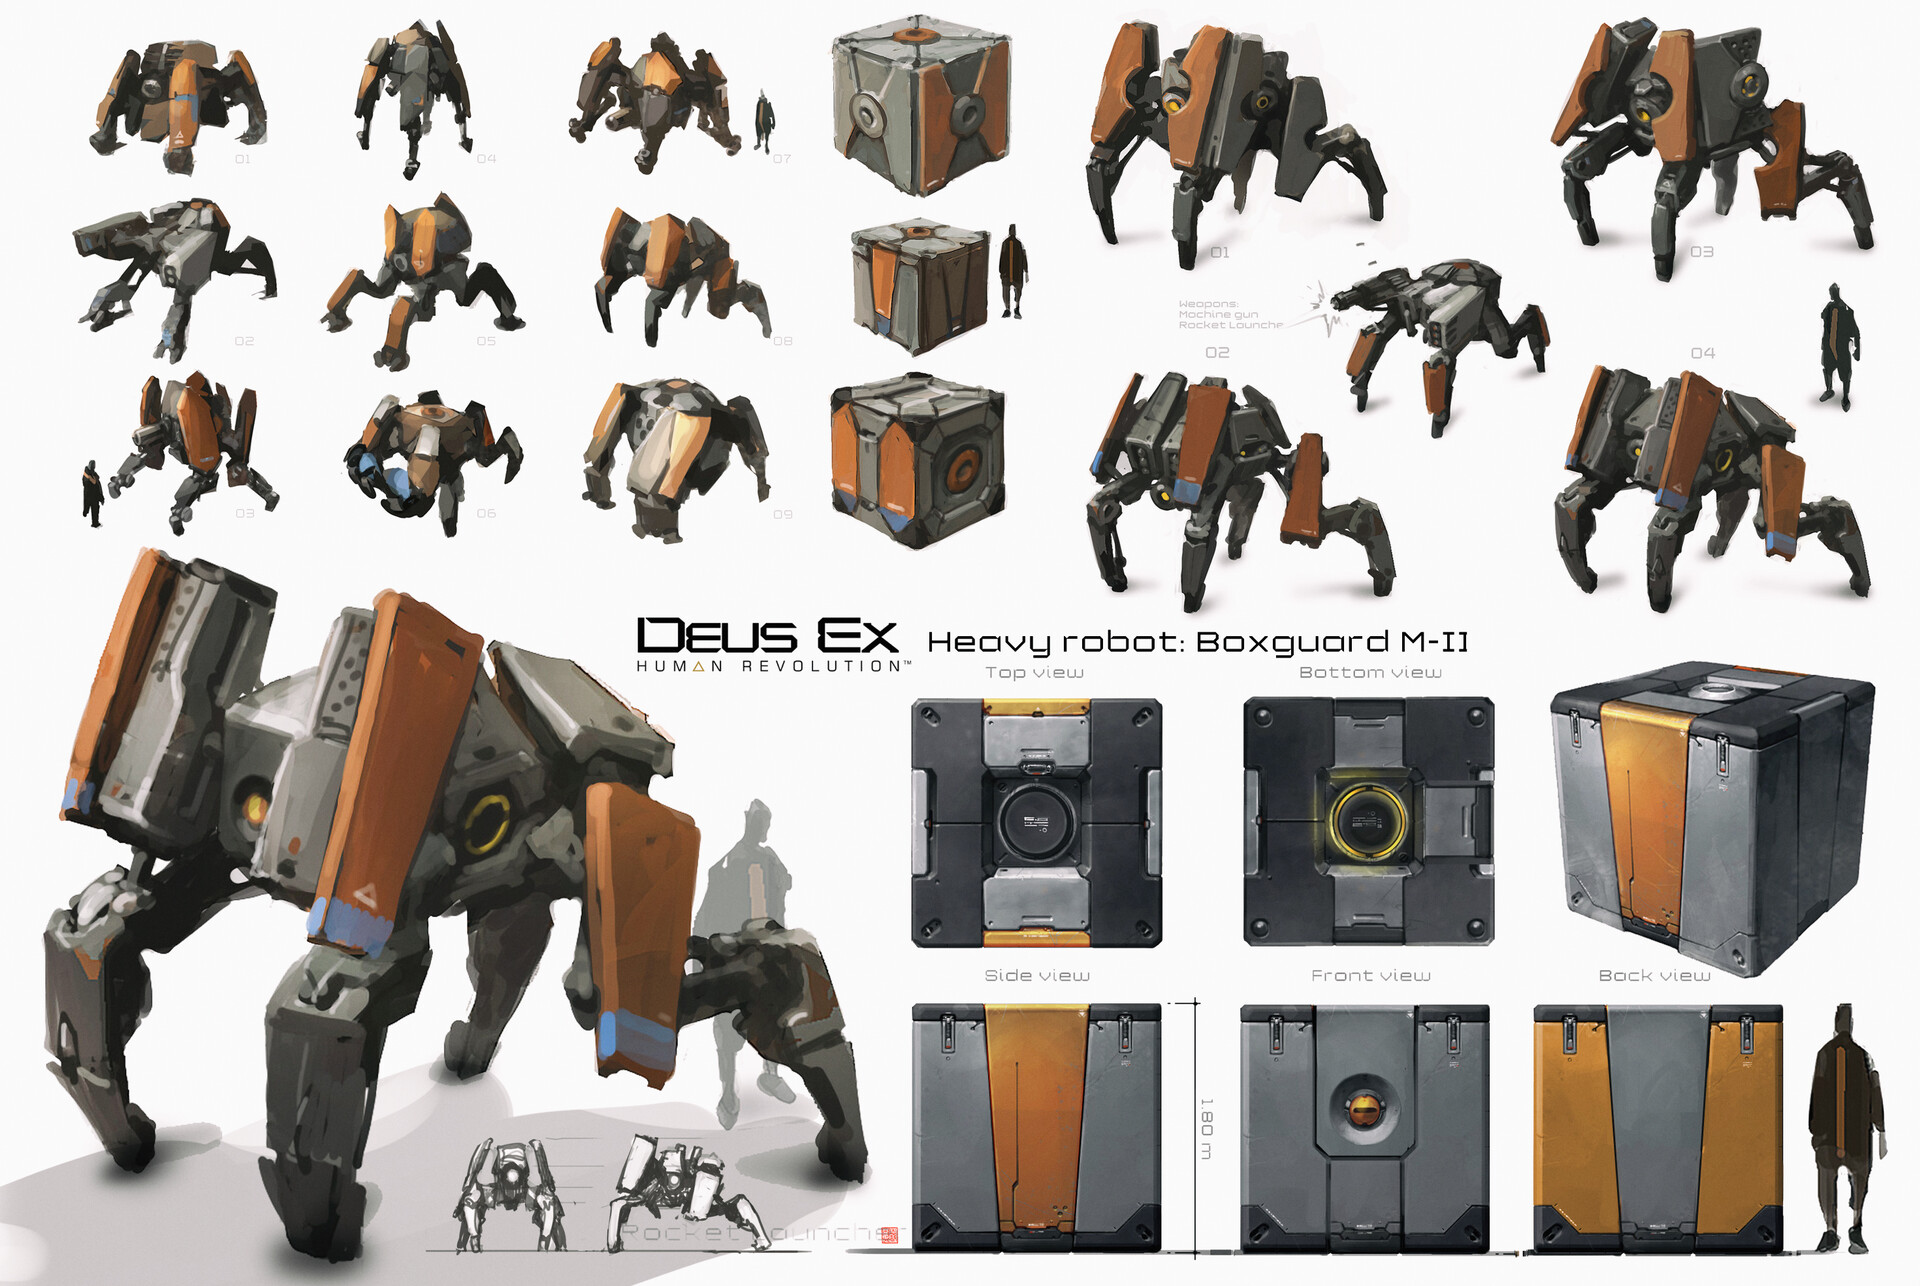 At some point I proposed an idea for a robot which could be self-stored as a box and transported anywhere when needed. It became the iconic Boxguard. early explorations and conceptual sketches...